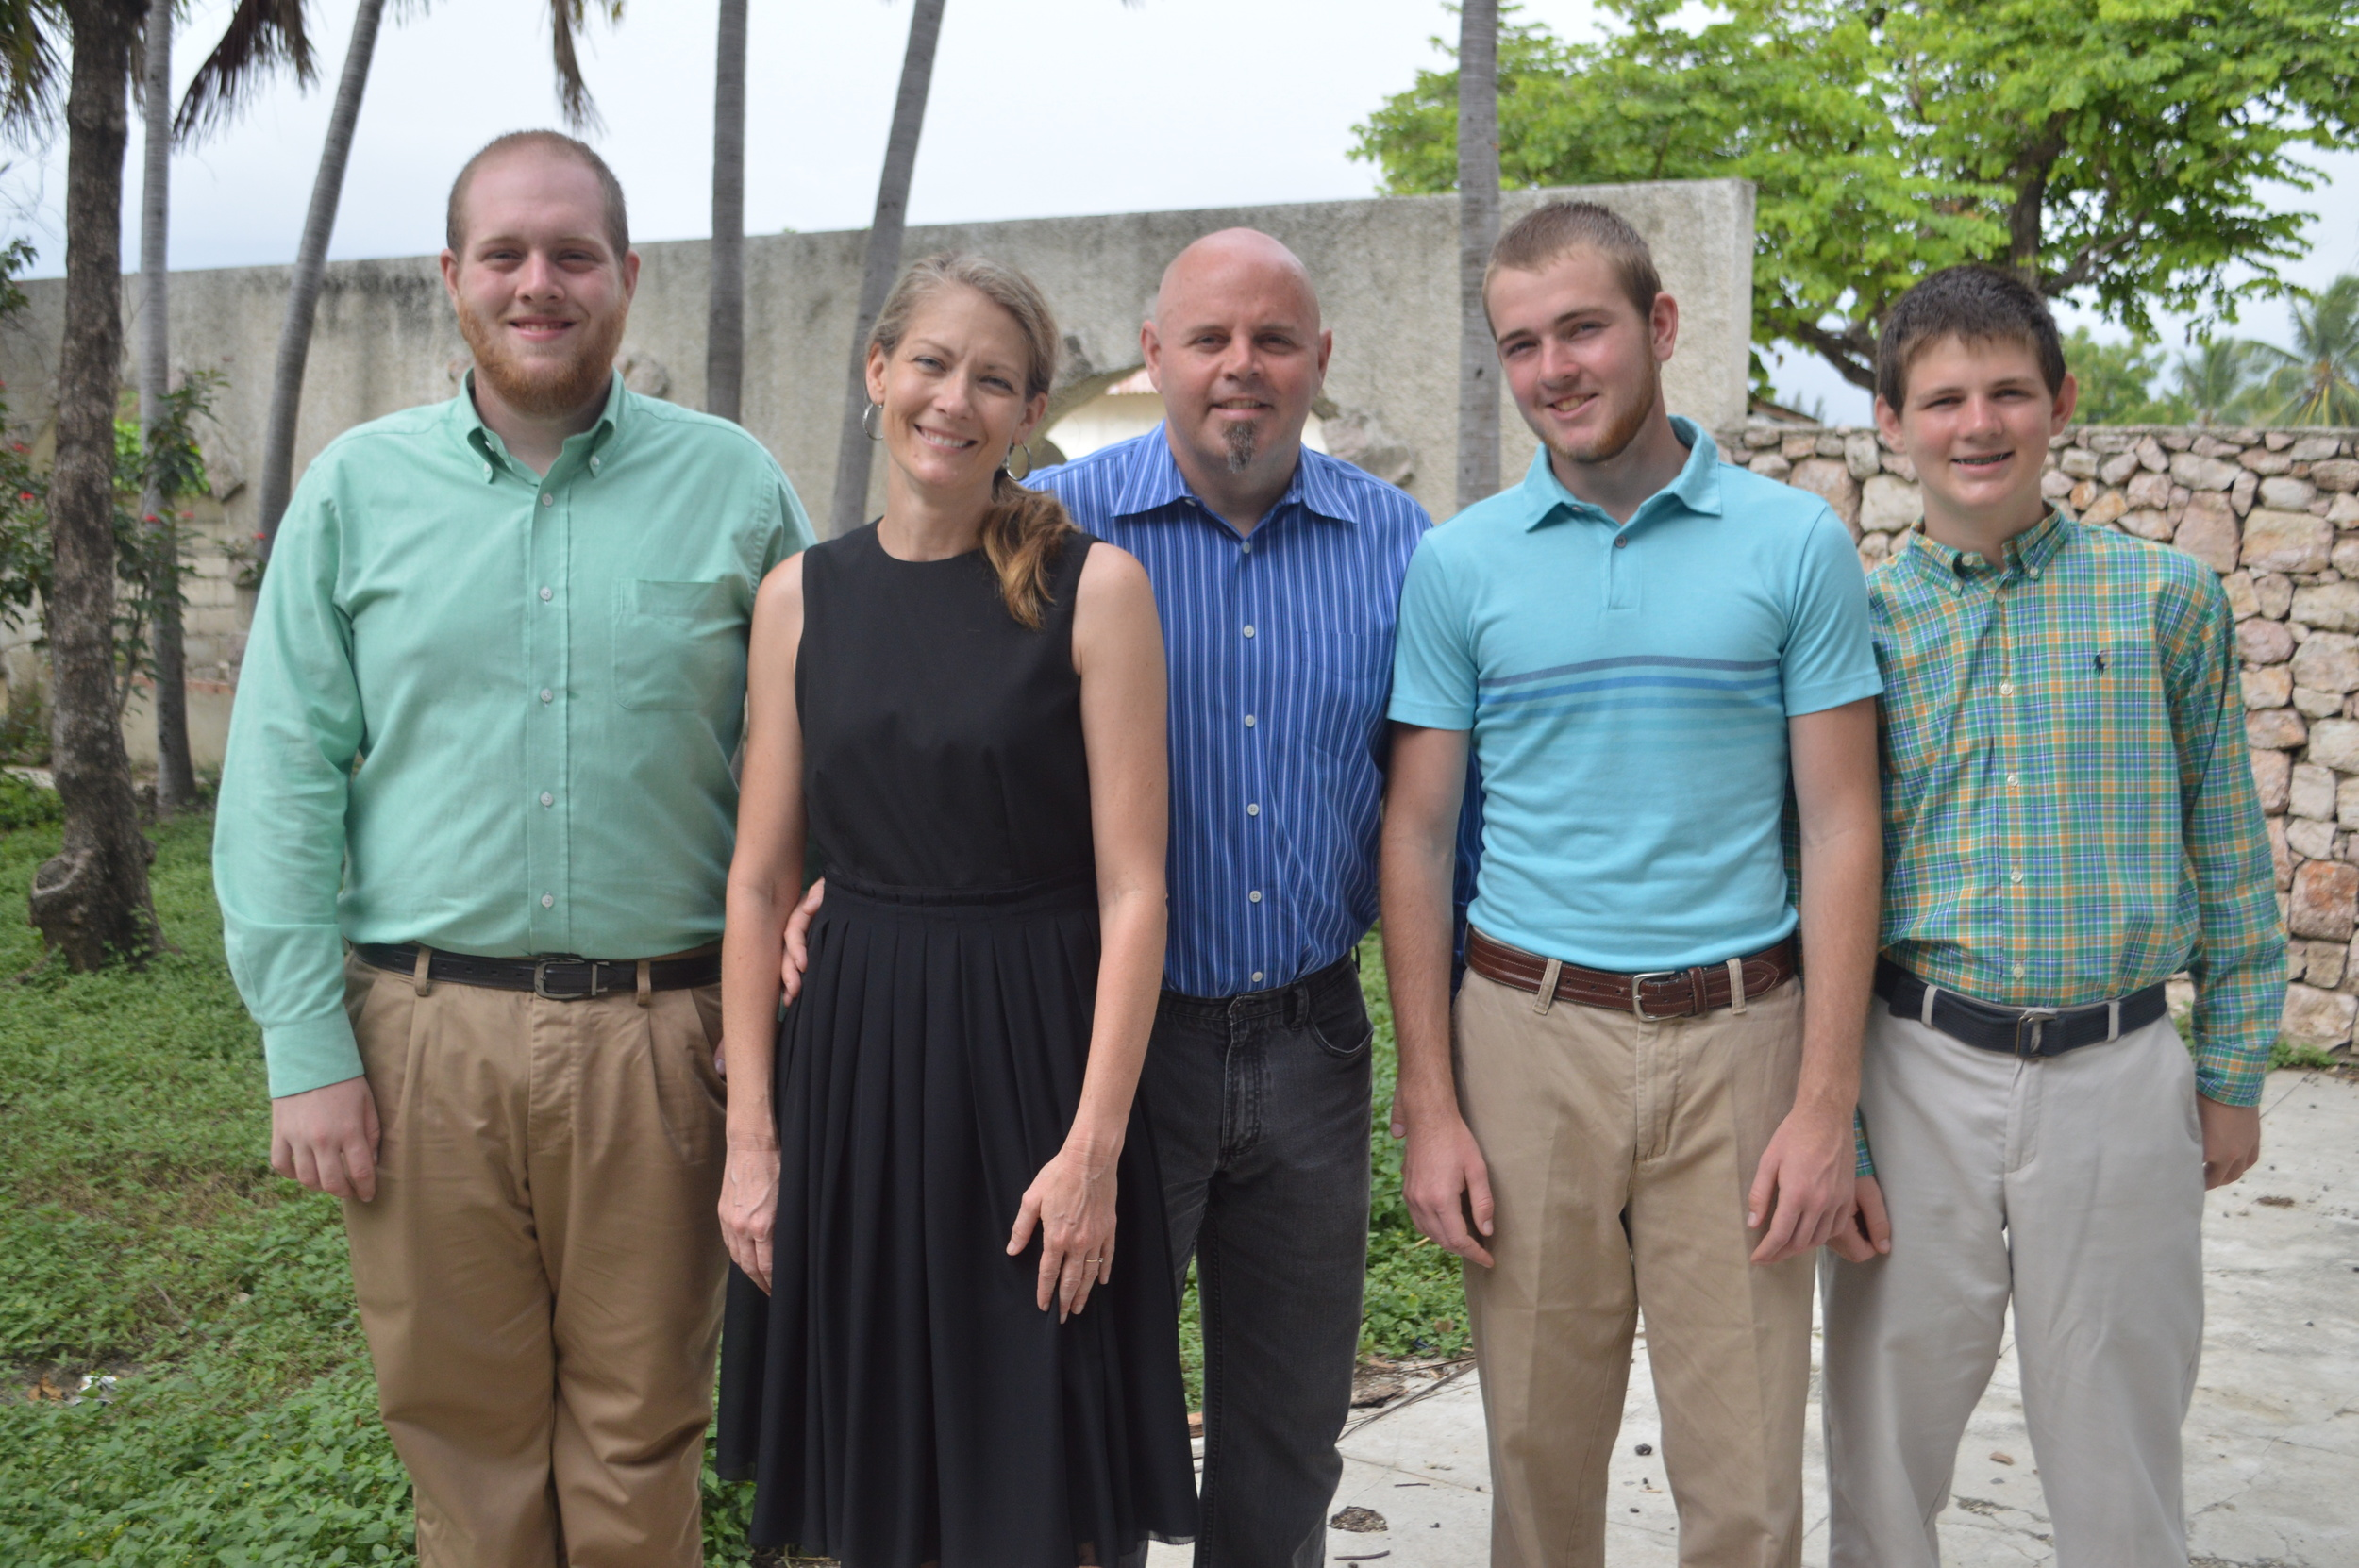 It's been a year since we were all in Haiti at the same time. I treasured the days we passed together!